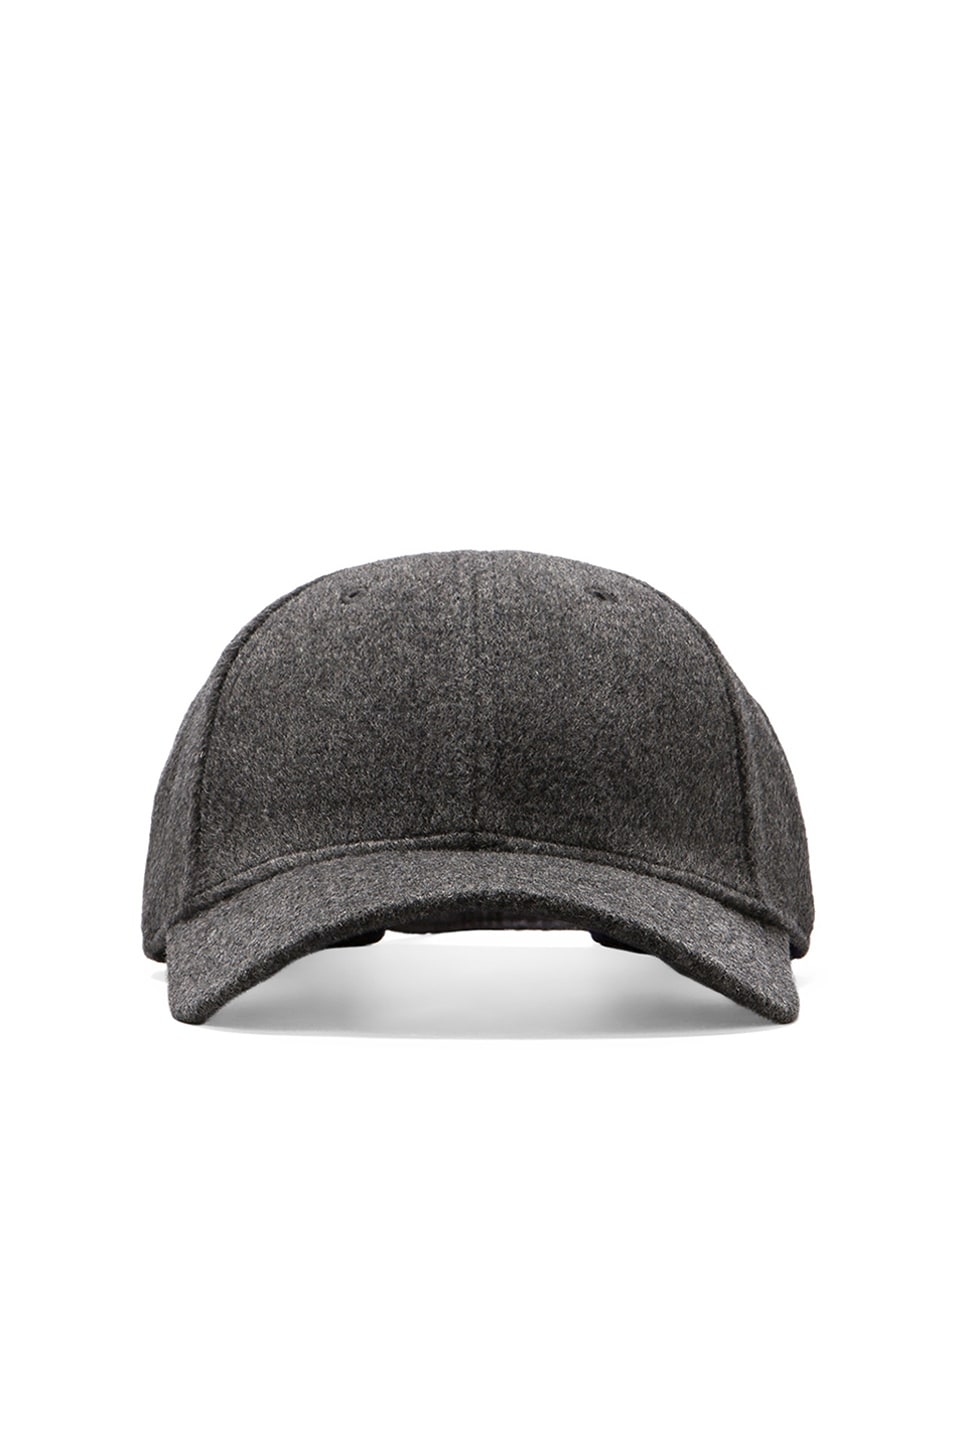 Photo of Luxe Cashmere Blend Cap by Gents Co. men clothes